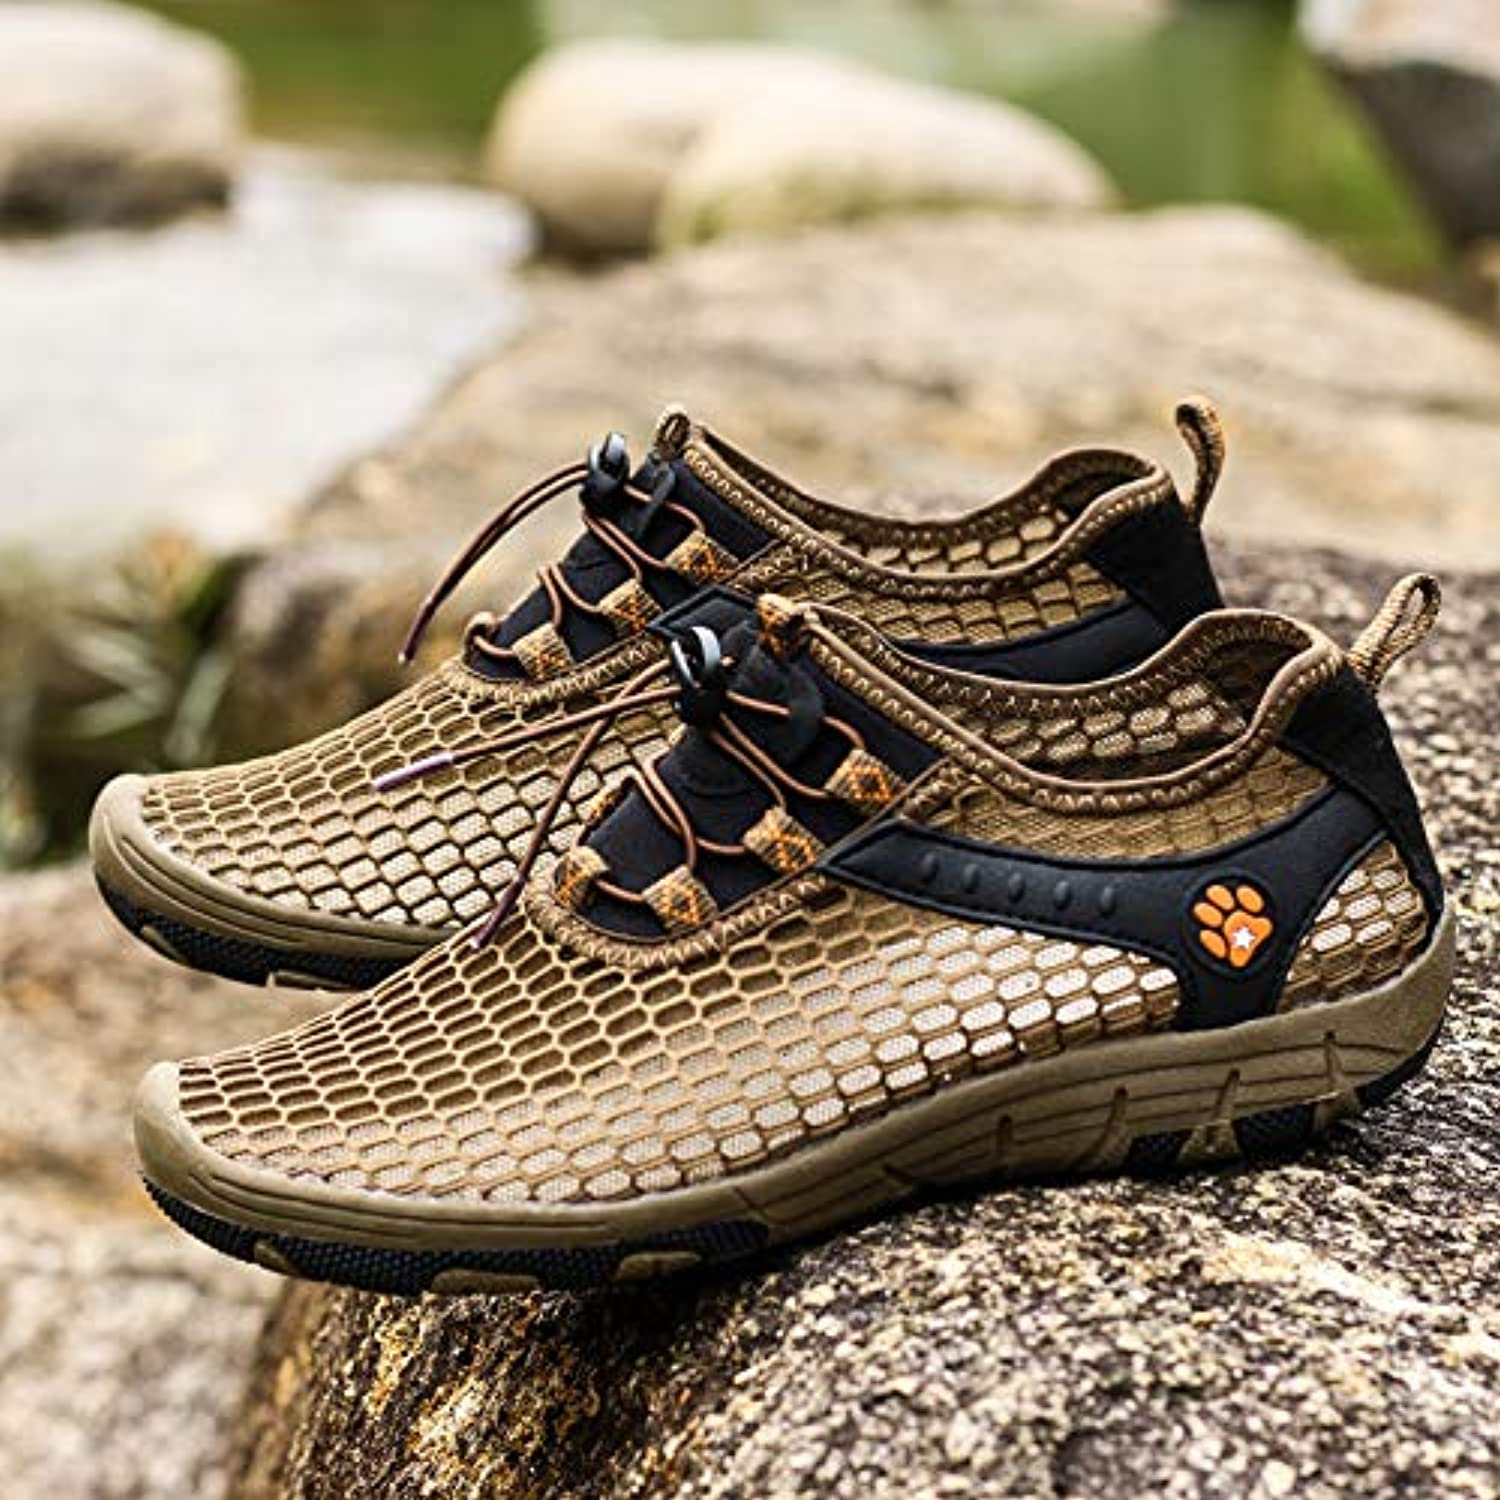 OPPP Water shoes Men's breathable outdoor mesh shoes sports upstream shoes men's shoes women's shoes sports quick-drying beach shoes